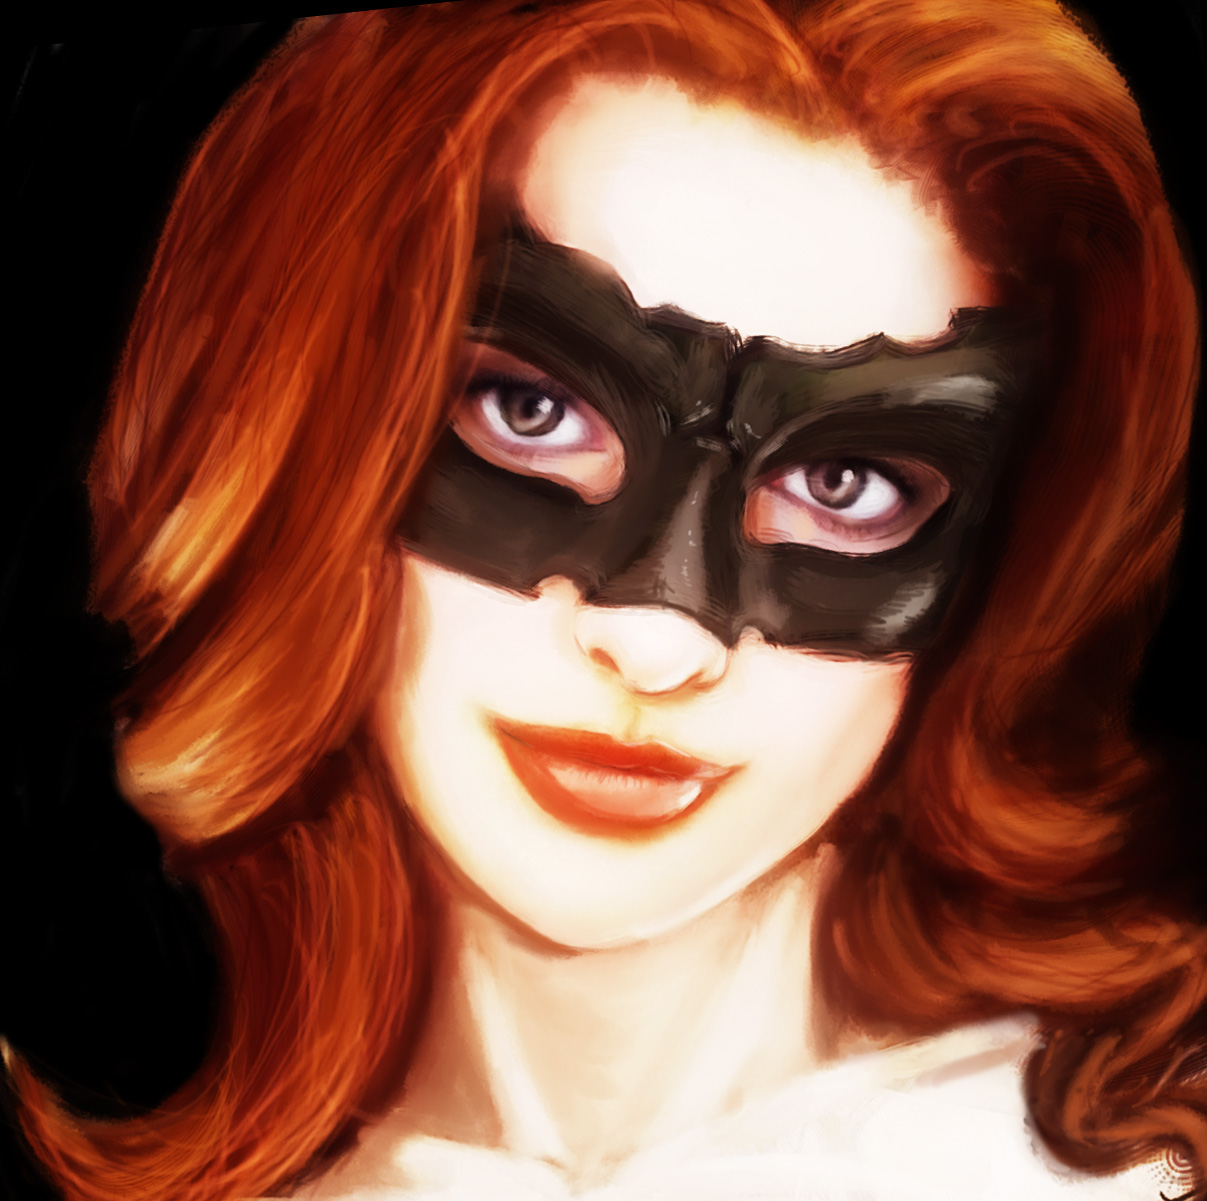 The Red Cat-Woman